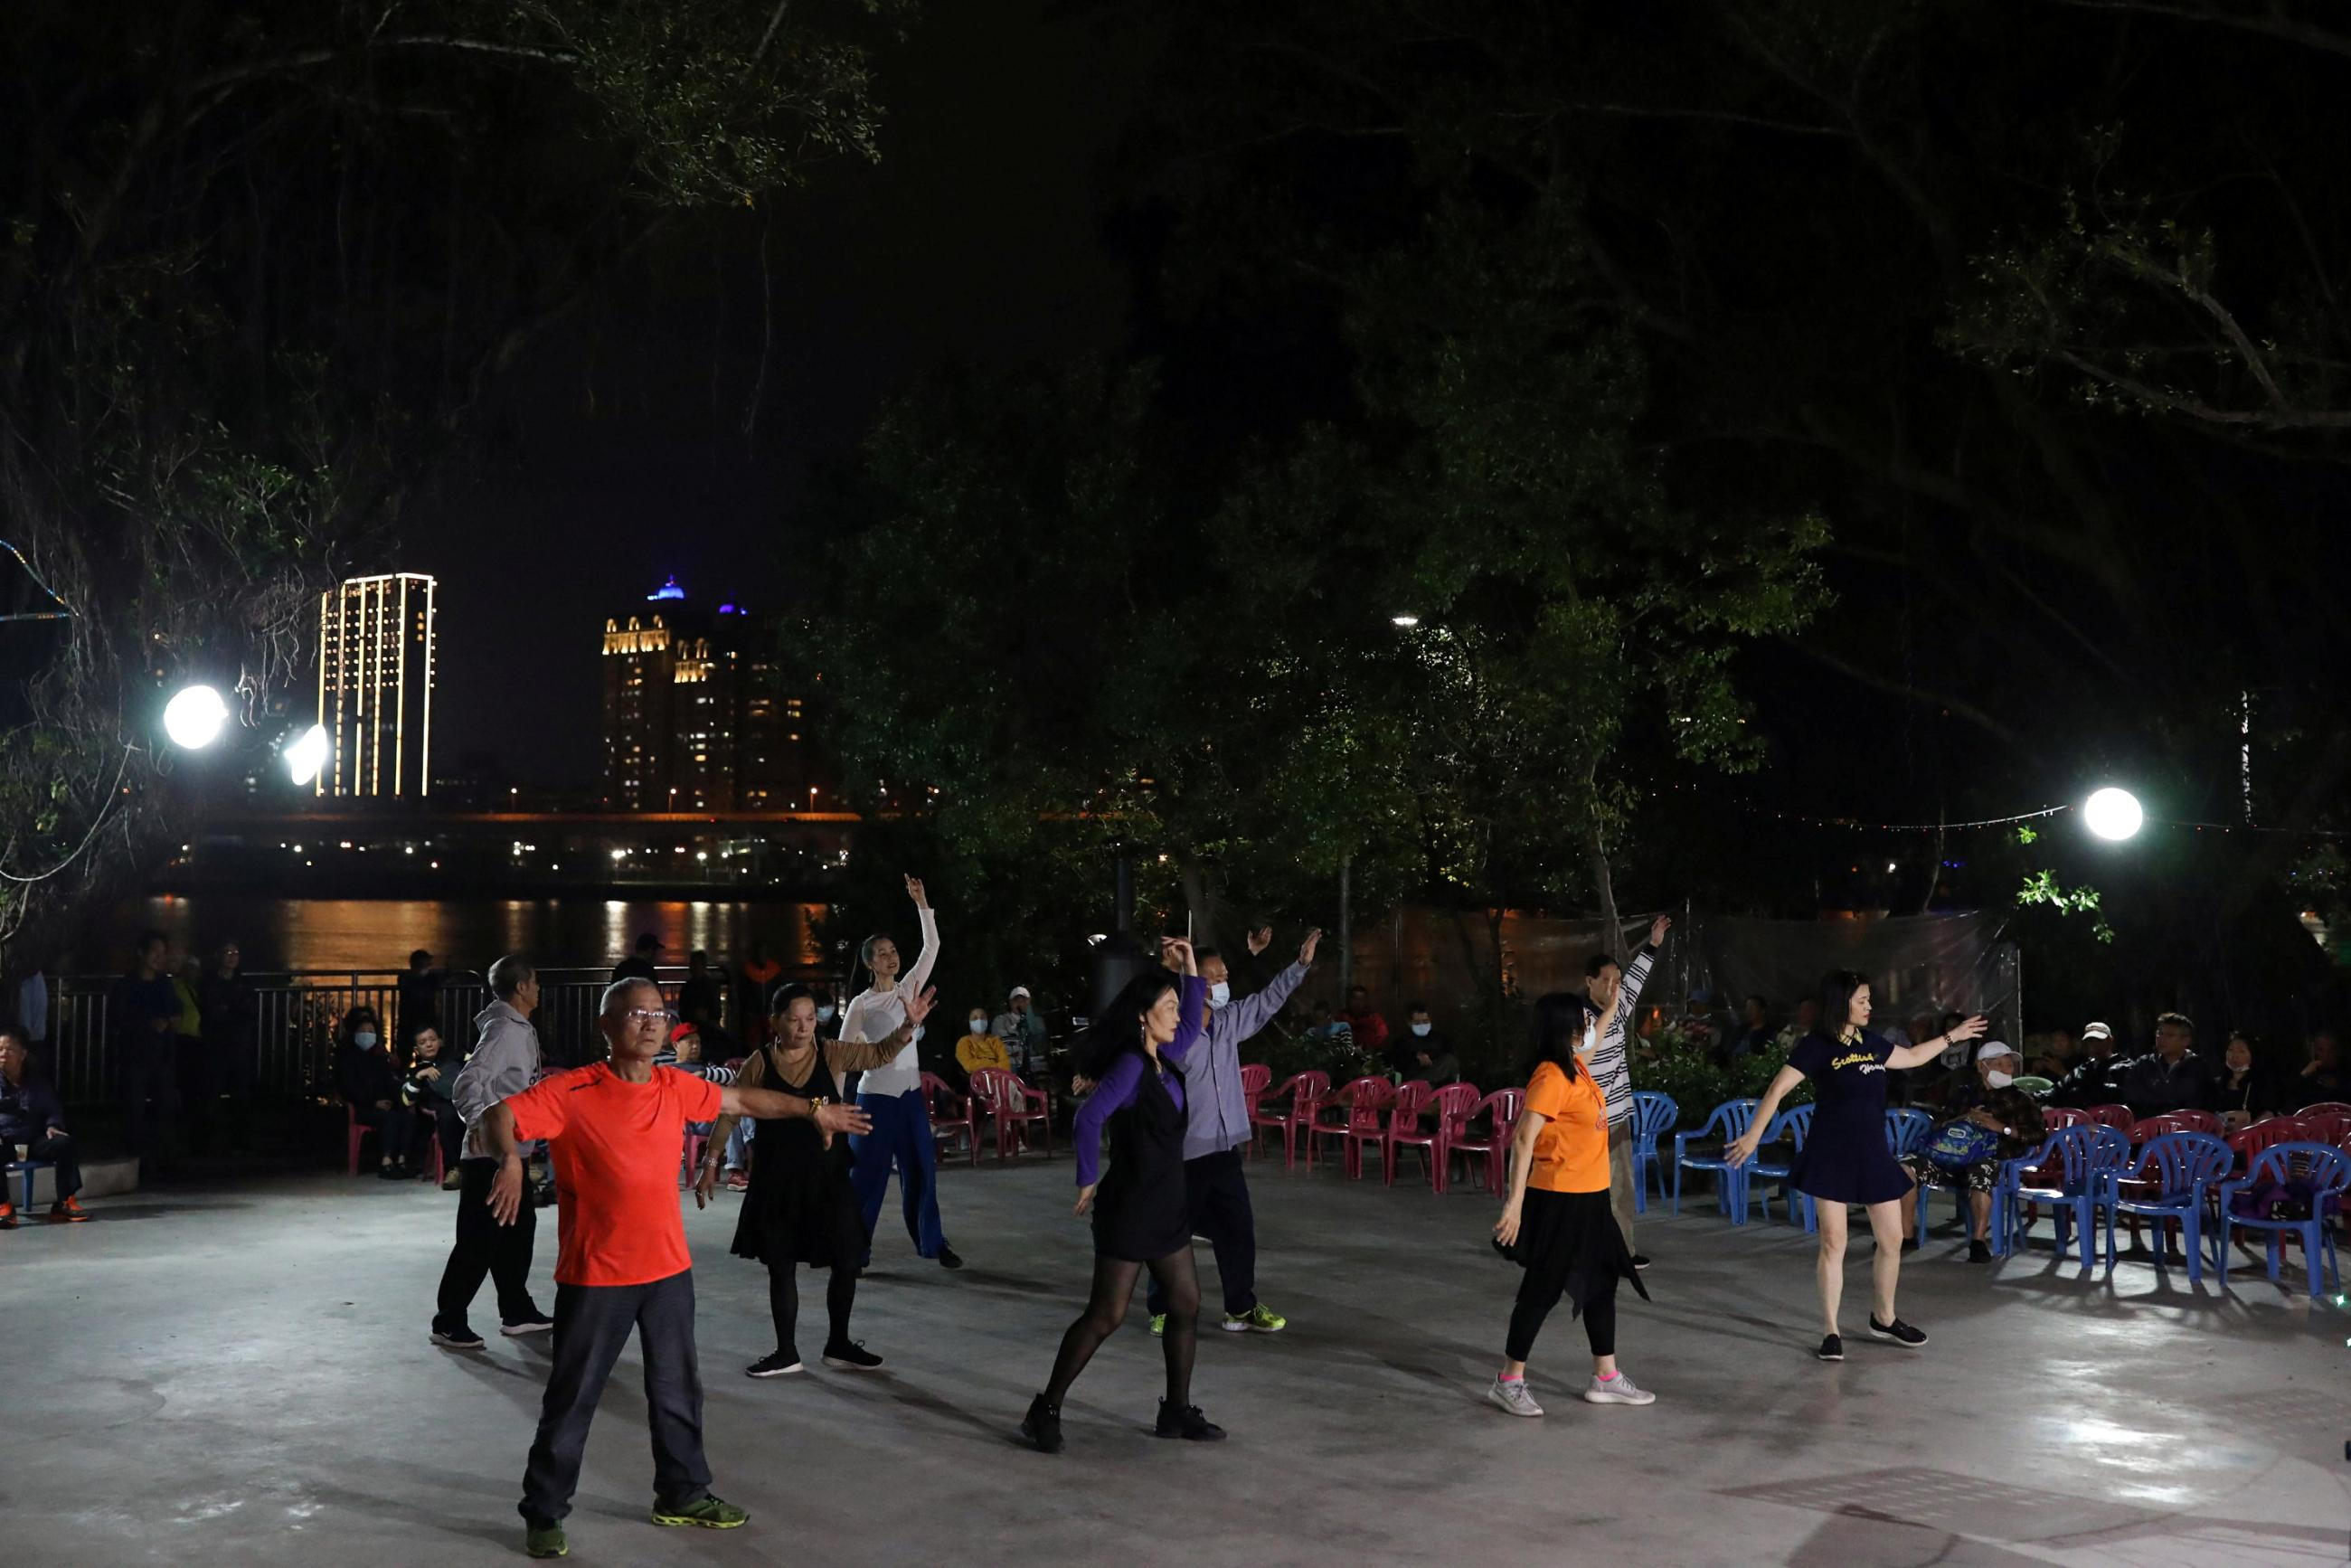 People dance to the music at a temple in Taipei, Taiwan on March 24, 2020.